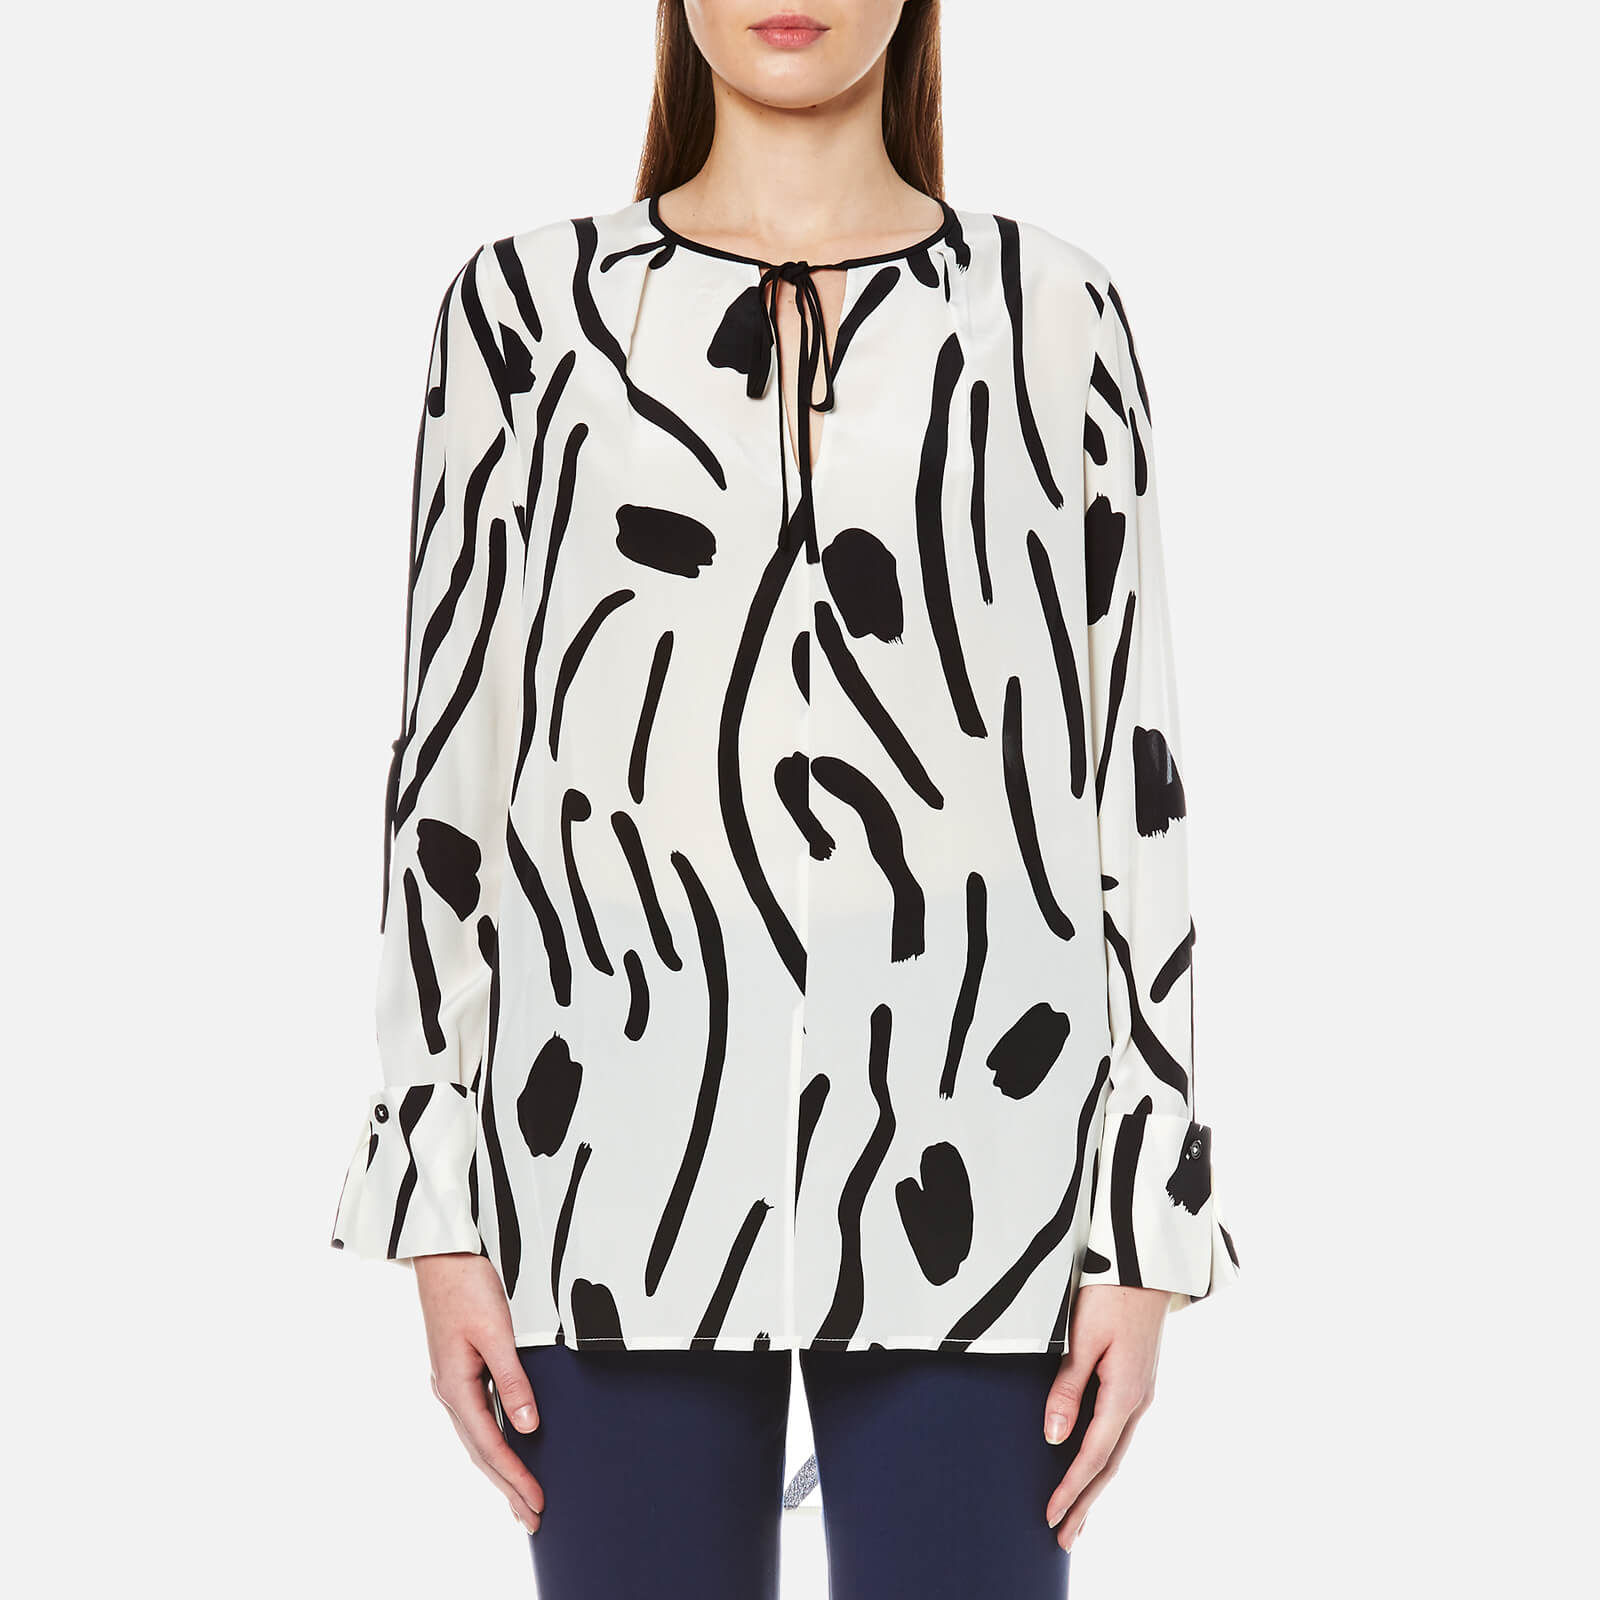 c08a9d3dceb94a Diane von Furstenberg Women s Keyhole Tied Blouse - Chatham Large  Ivory Black - Free UK Delivery over £50